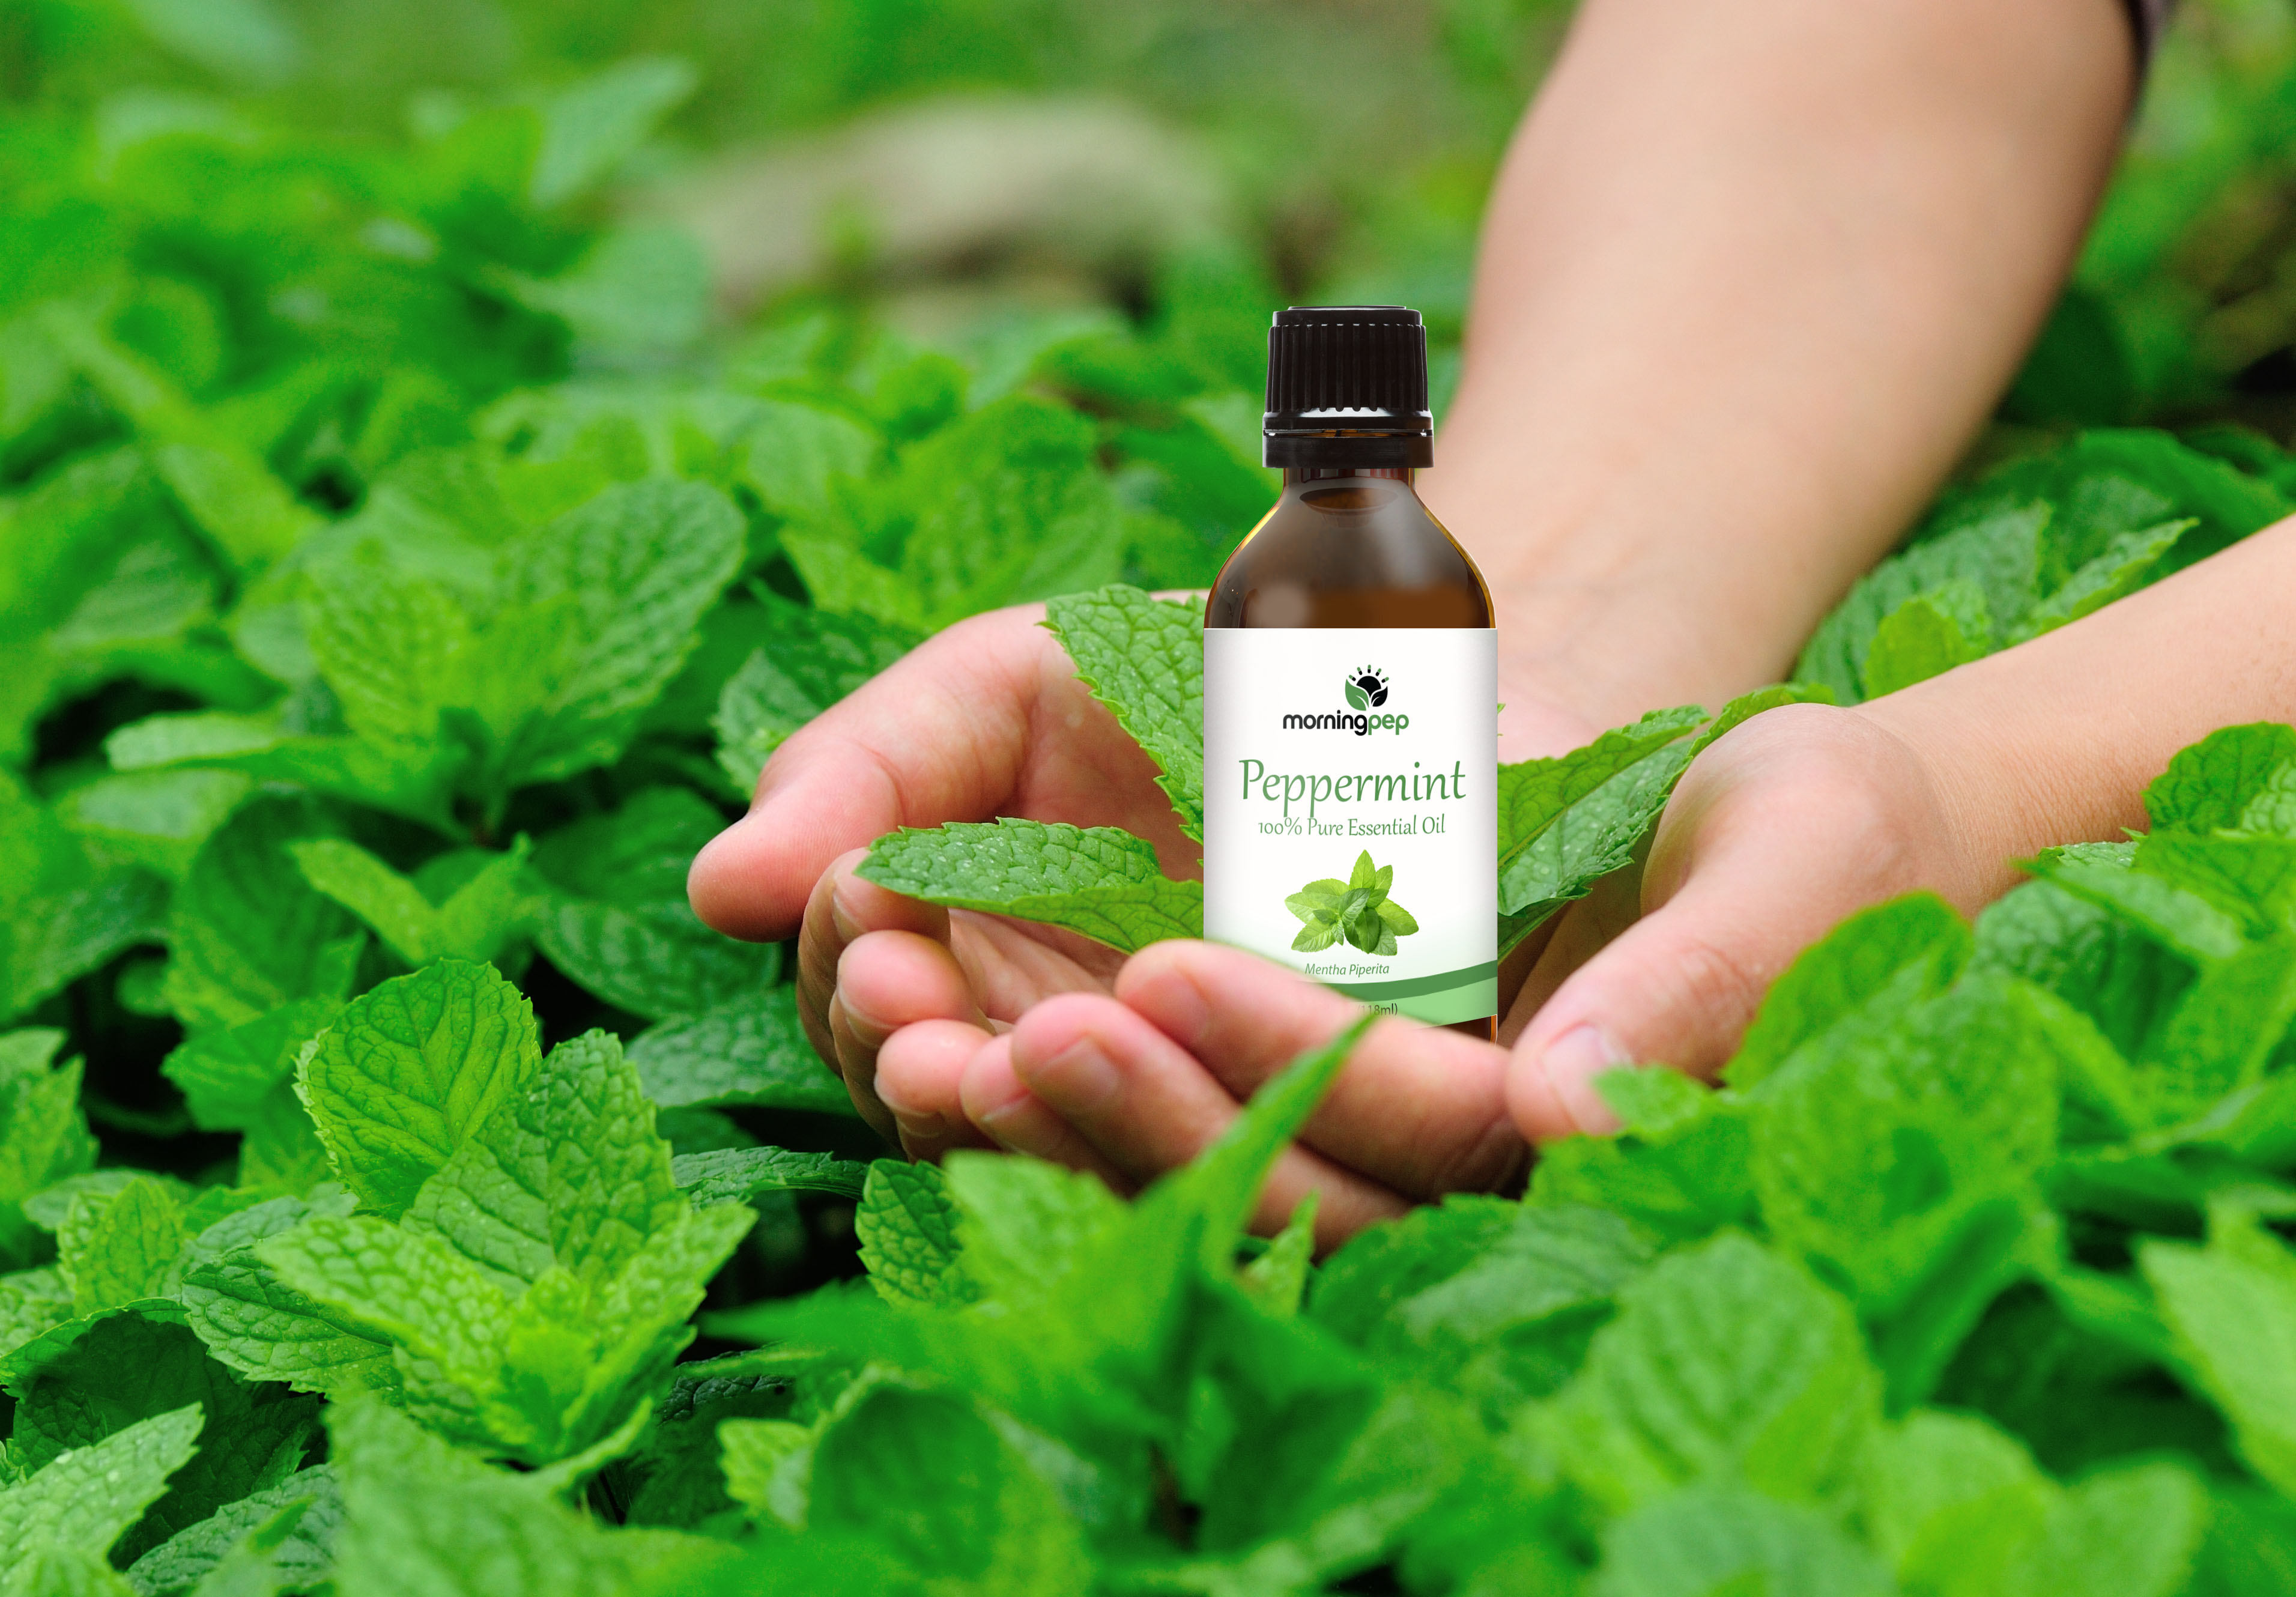 peppermint-oil-image-3